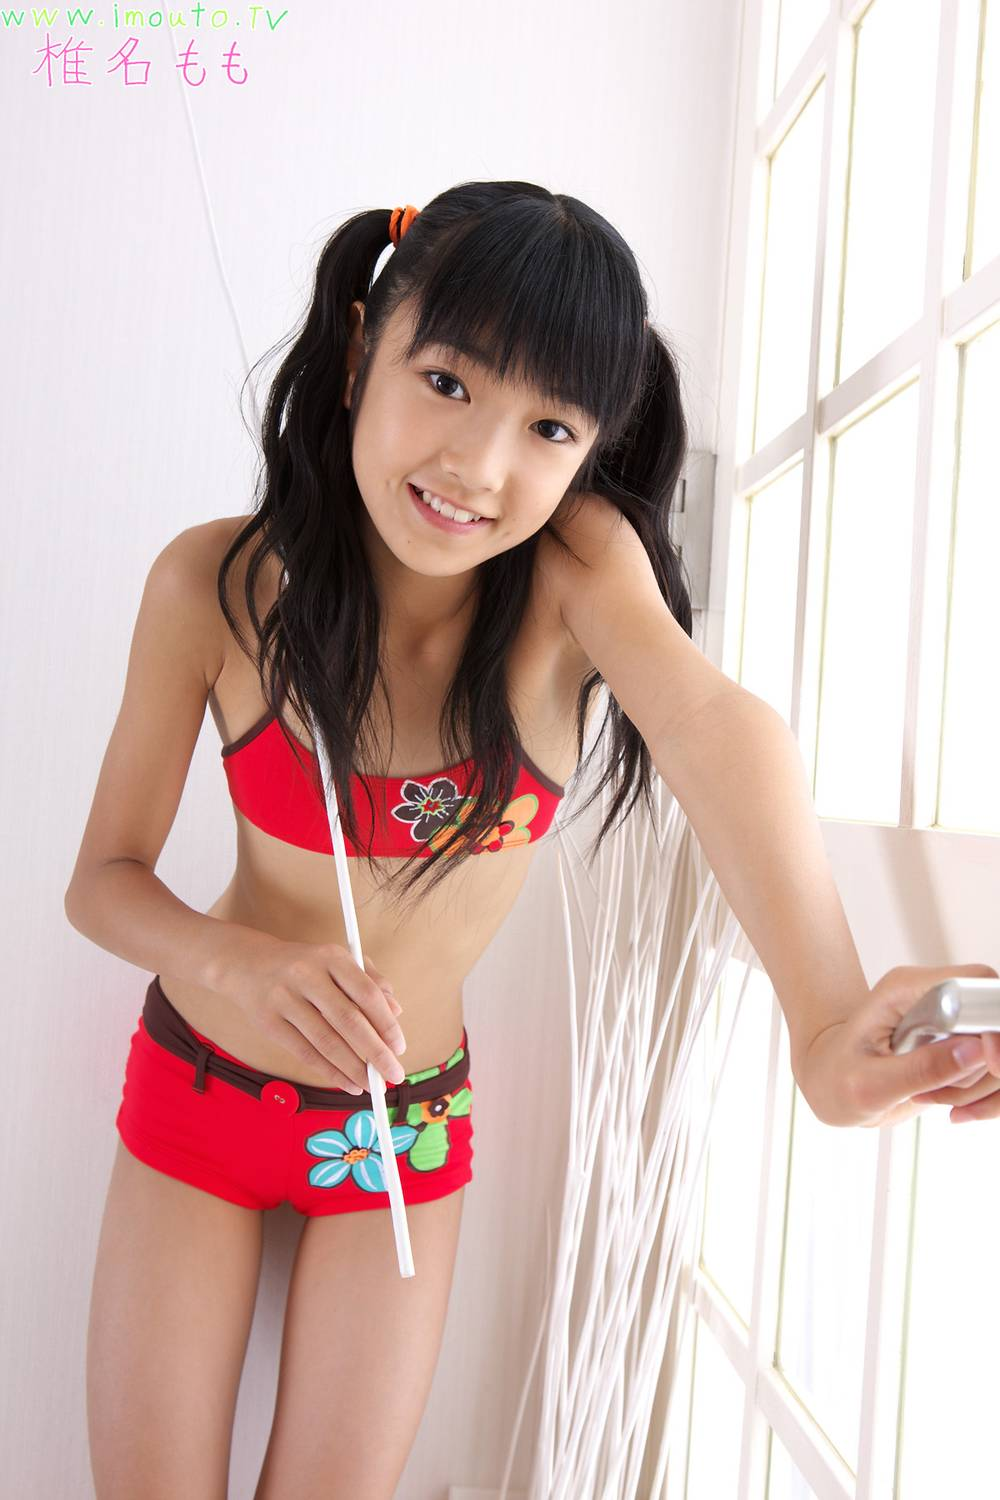 gravure promotion pictures, Shiina Momo | TechnOtaku Gallery